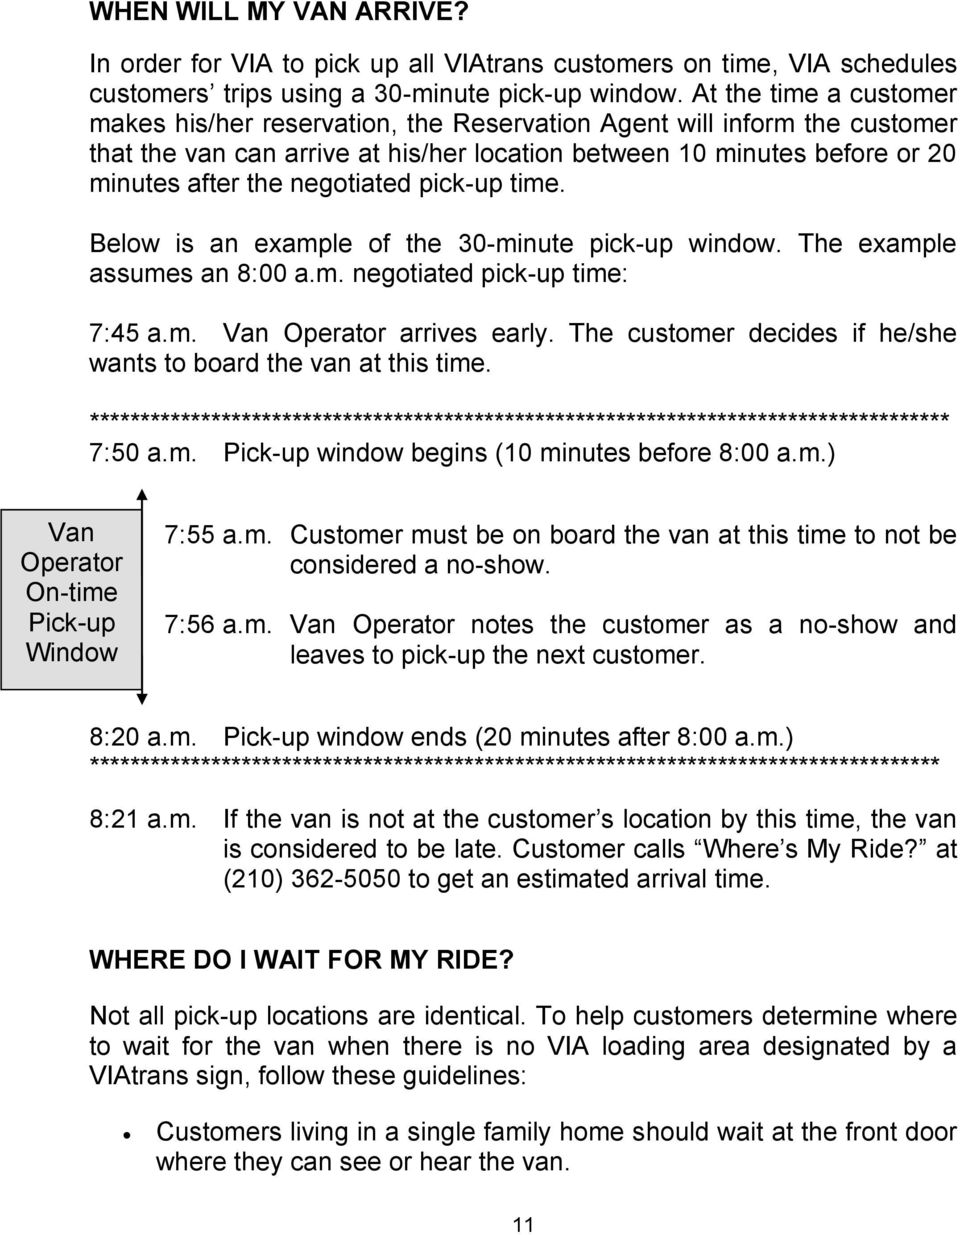 negotiated pick-up time. Below is an example of the 30-minute pick-up window. The example assumes an 8:00 a.m. negotiated pick-up time: 7:45 a.m. Van Operator arrives early.